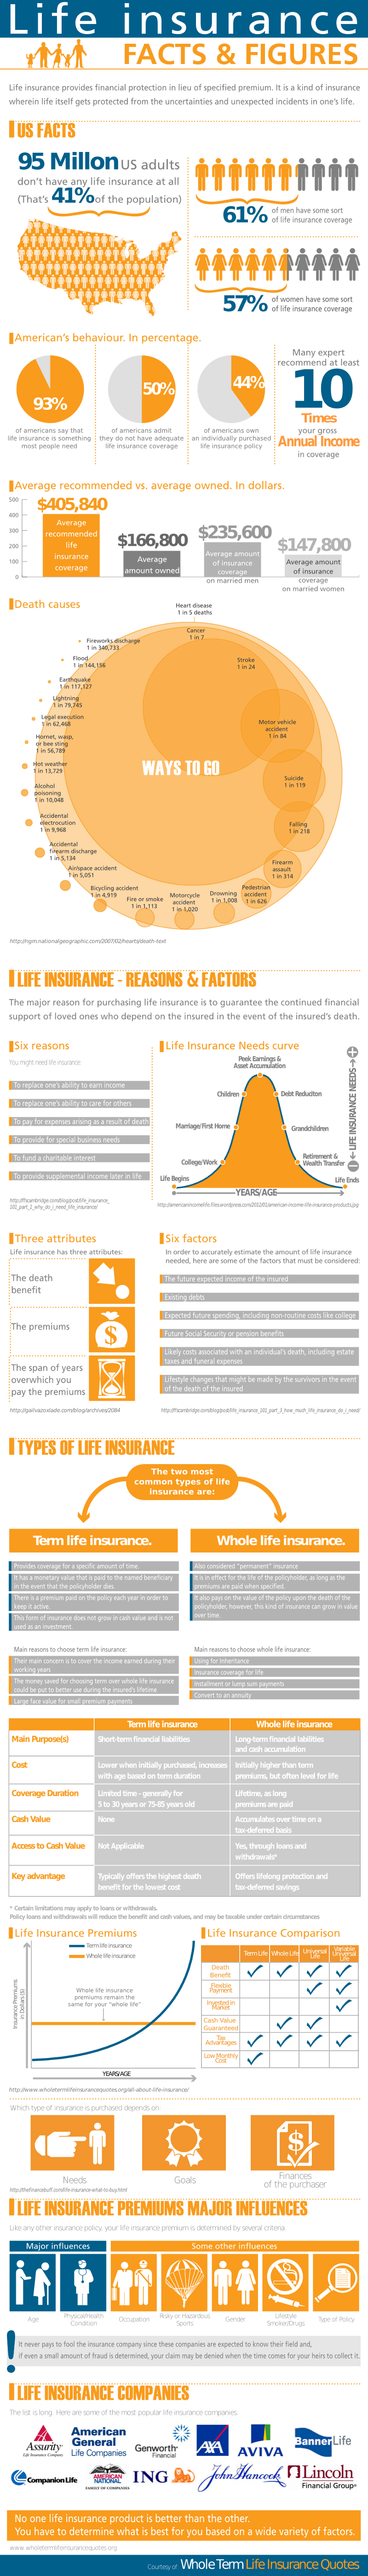 Life Insurance Industry Facts